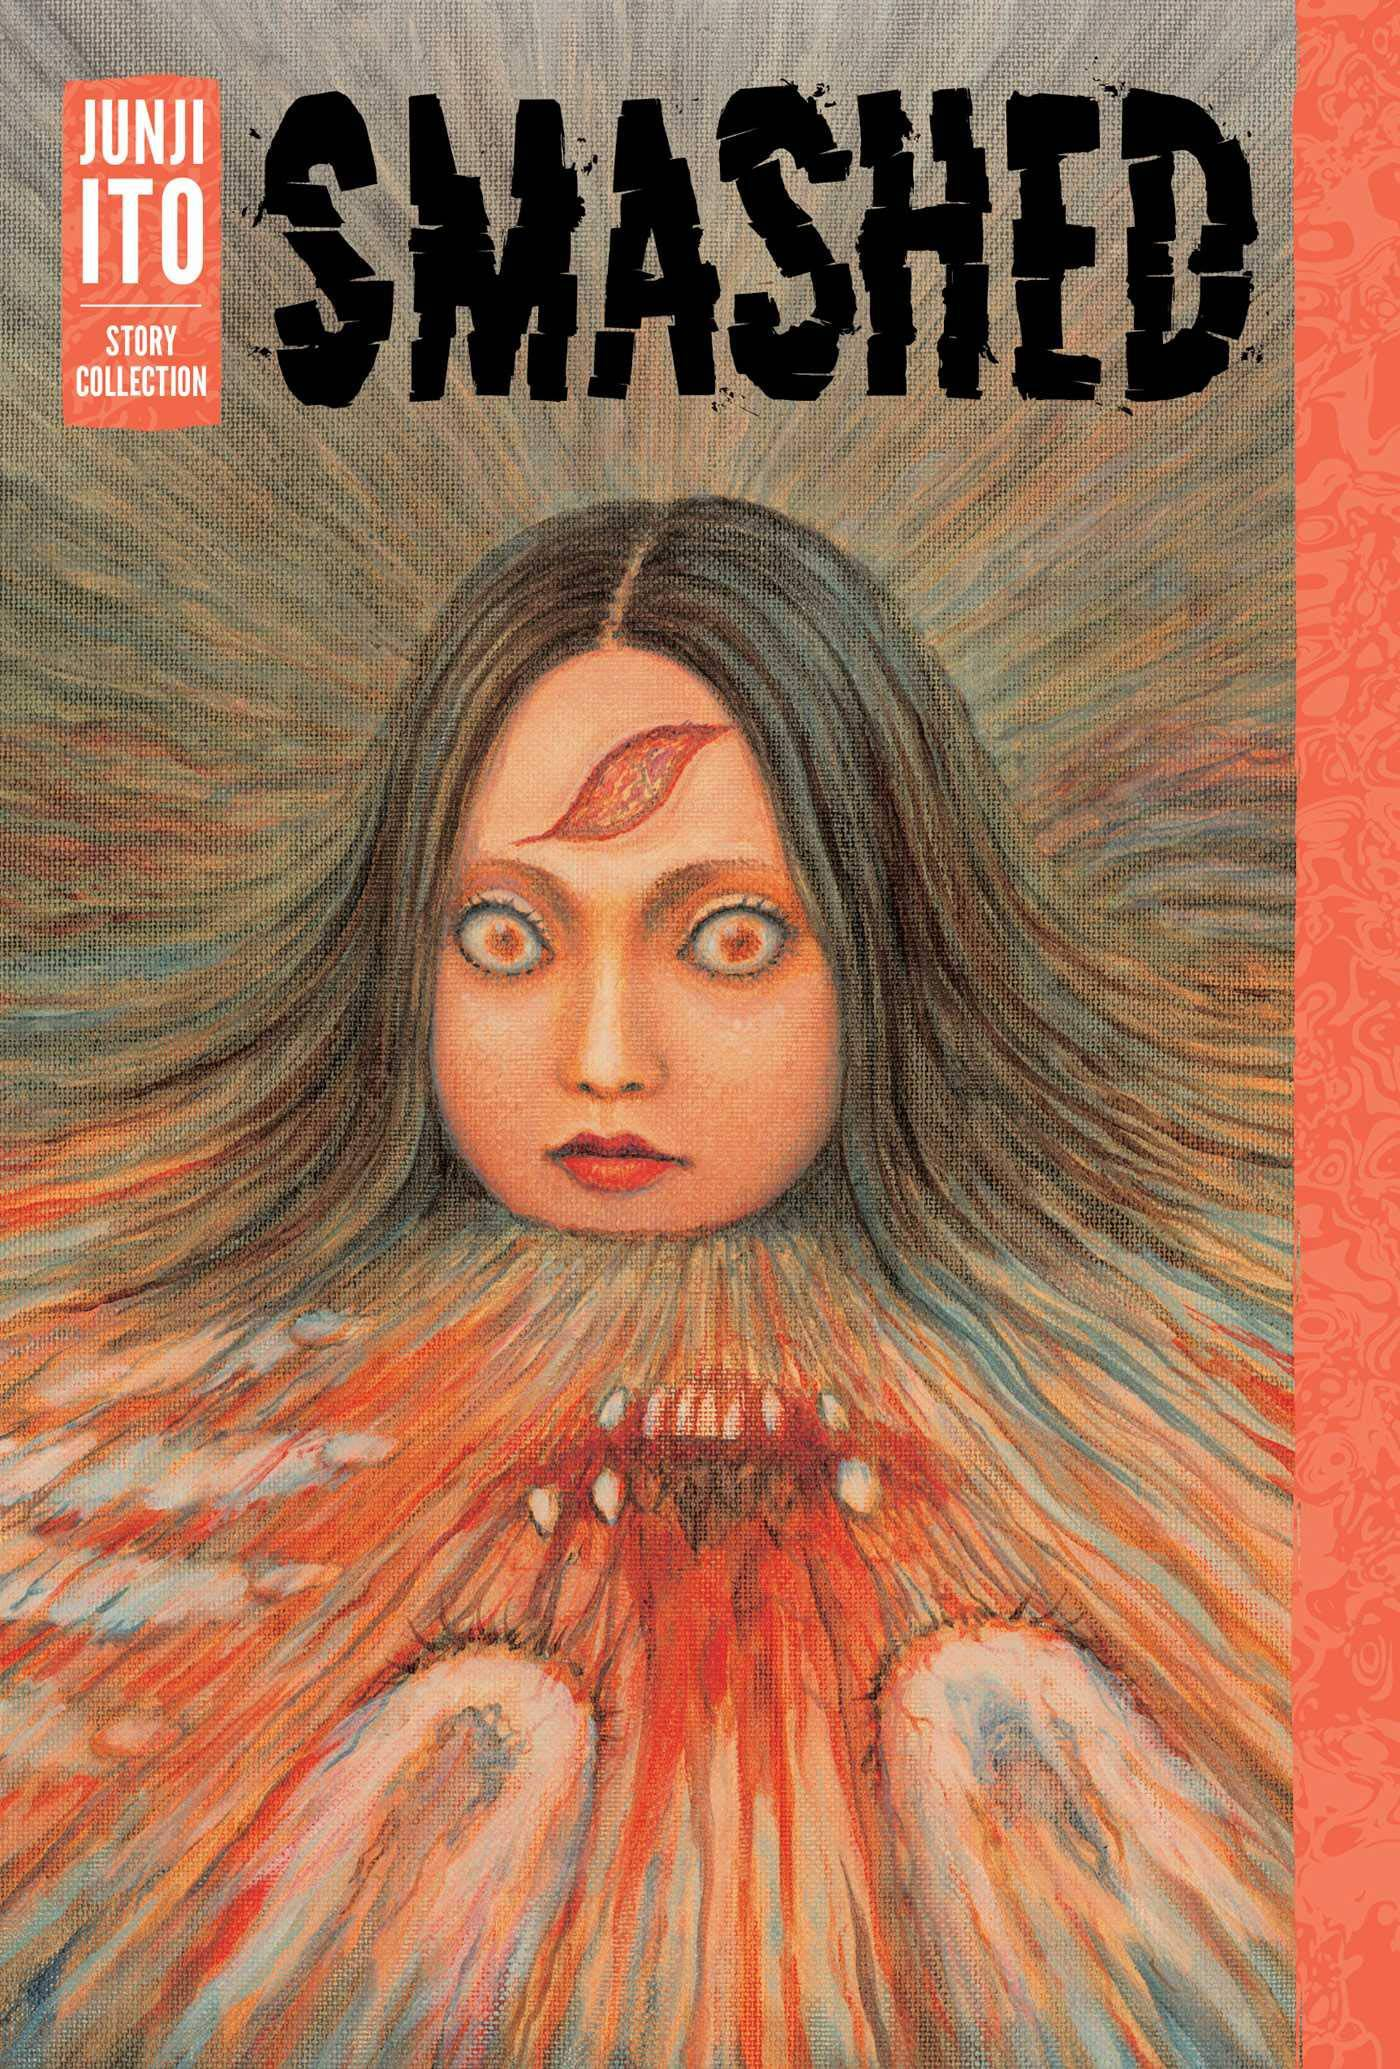 SMASHED JUNJI ITO STORY COLLECTION HC (MR) (C: 1-0-1)